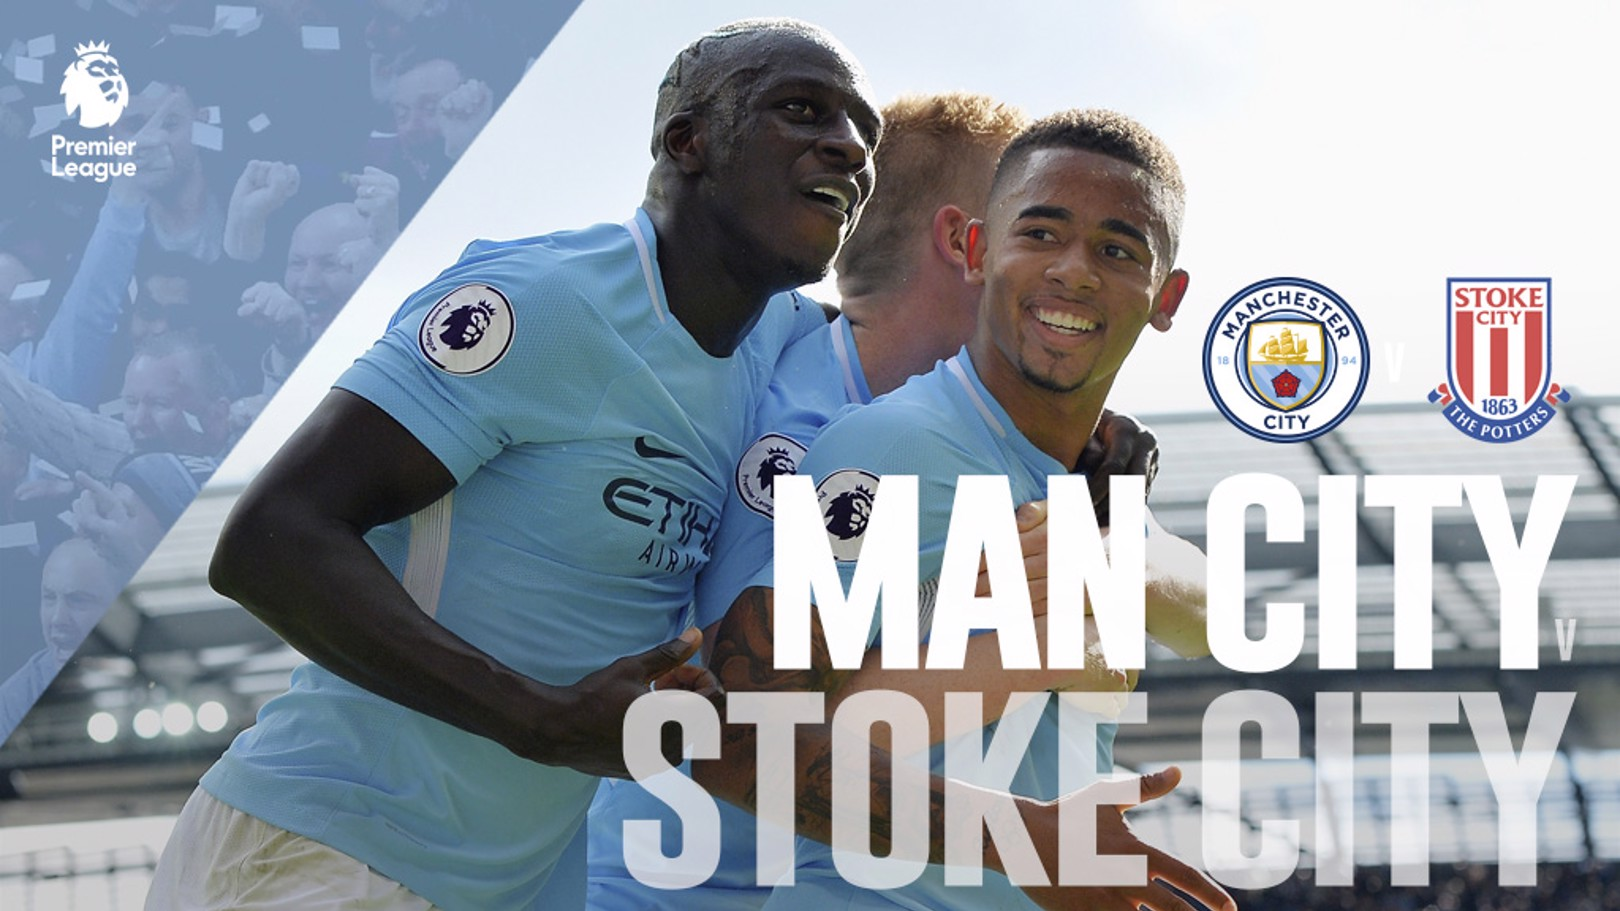 City vs Stoke: En direct!